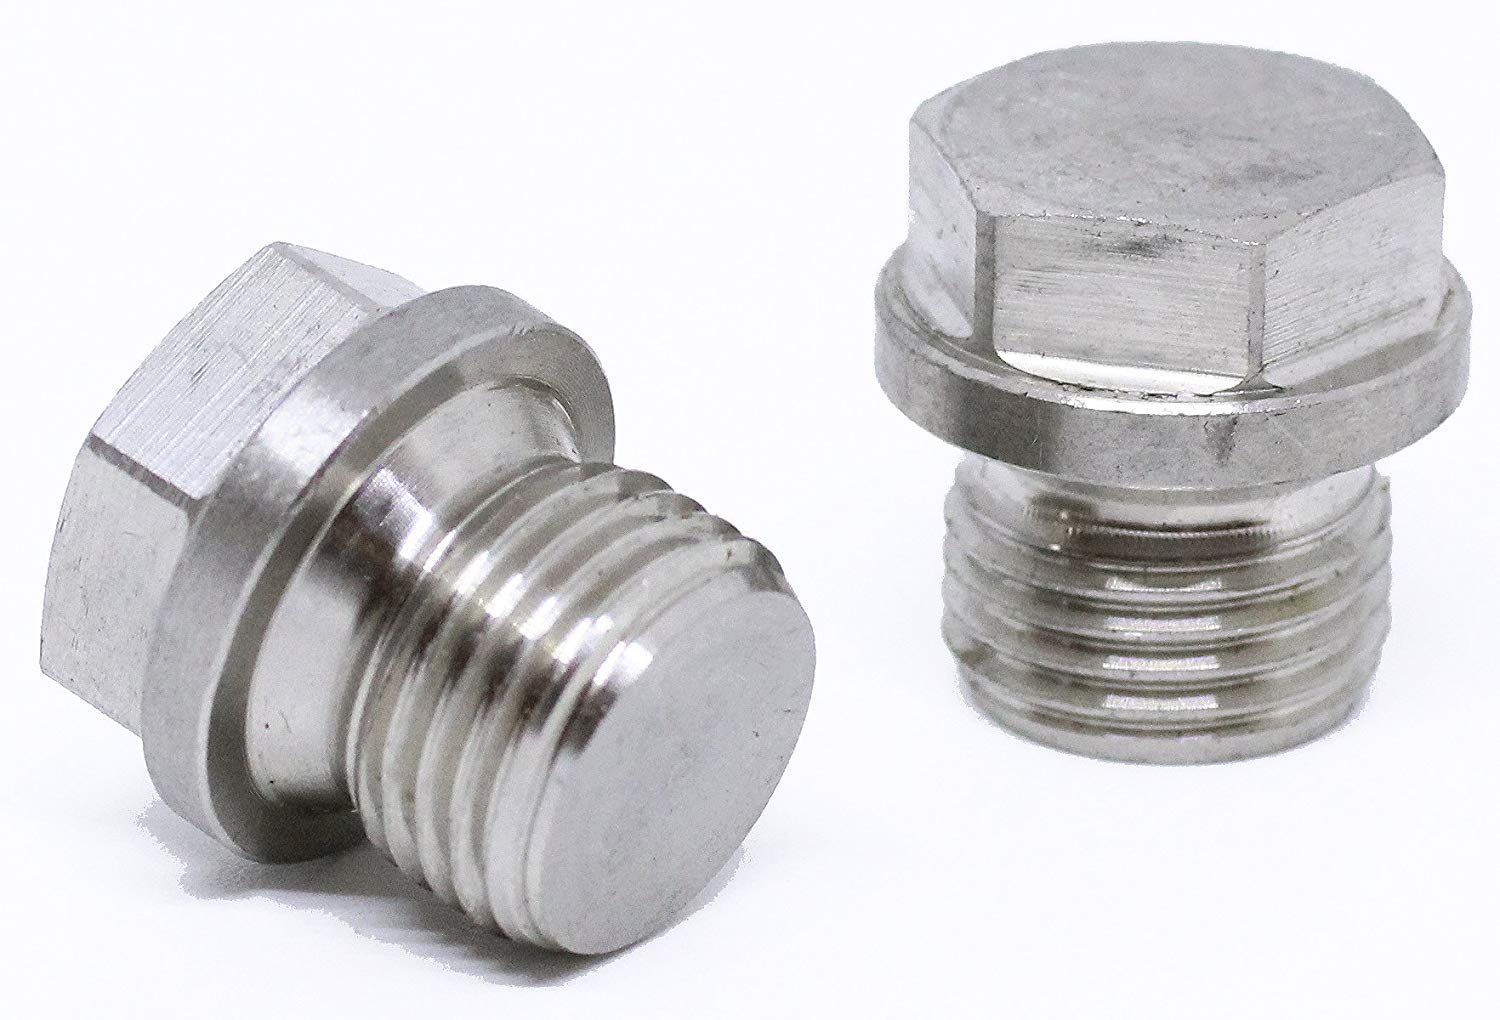 1pc BelMetric M20X1.5 Flanged A2-70 Stainlesss Steel Hex Head Plugs DIN 910 for Machinery and Fittings Sealing Washers Included DP20X1.5HSS